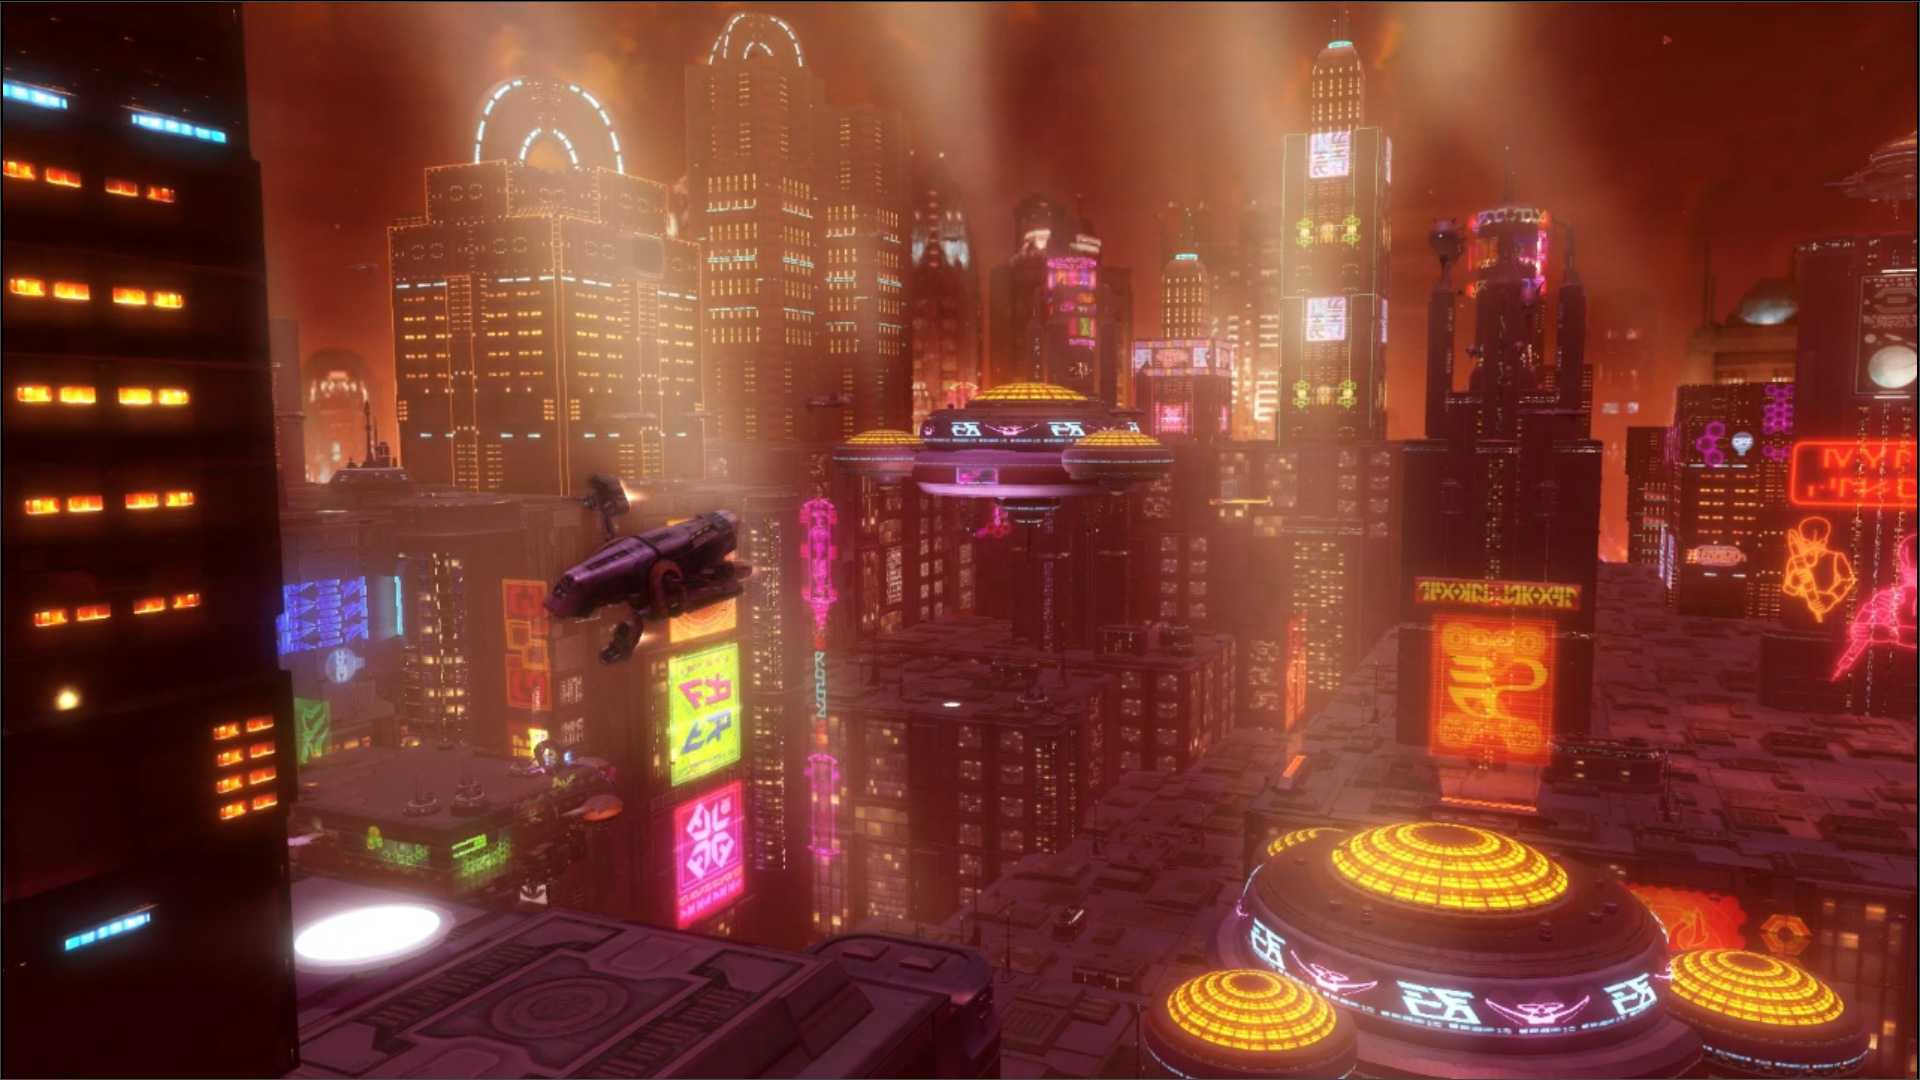 Nar Shaddaa Environment Swtor Strongholds